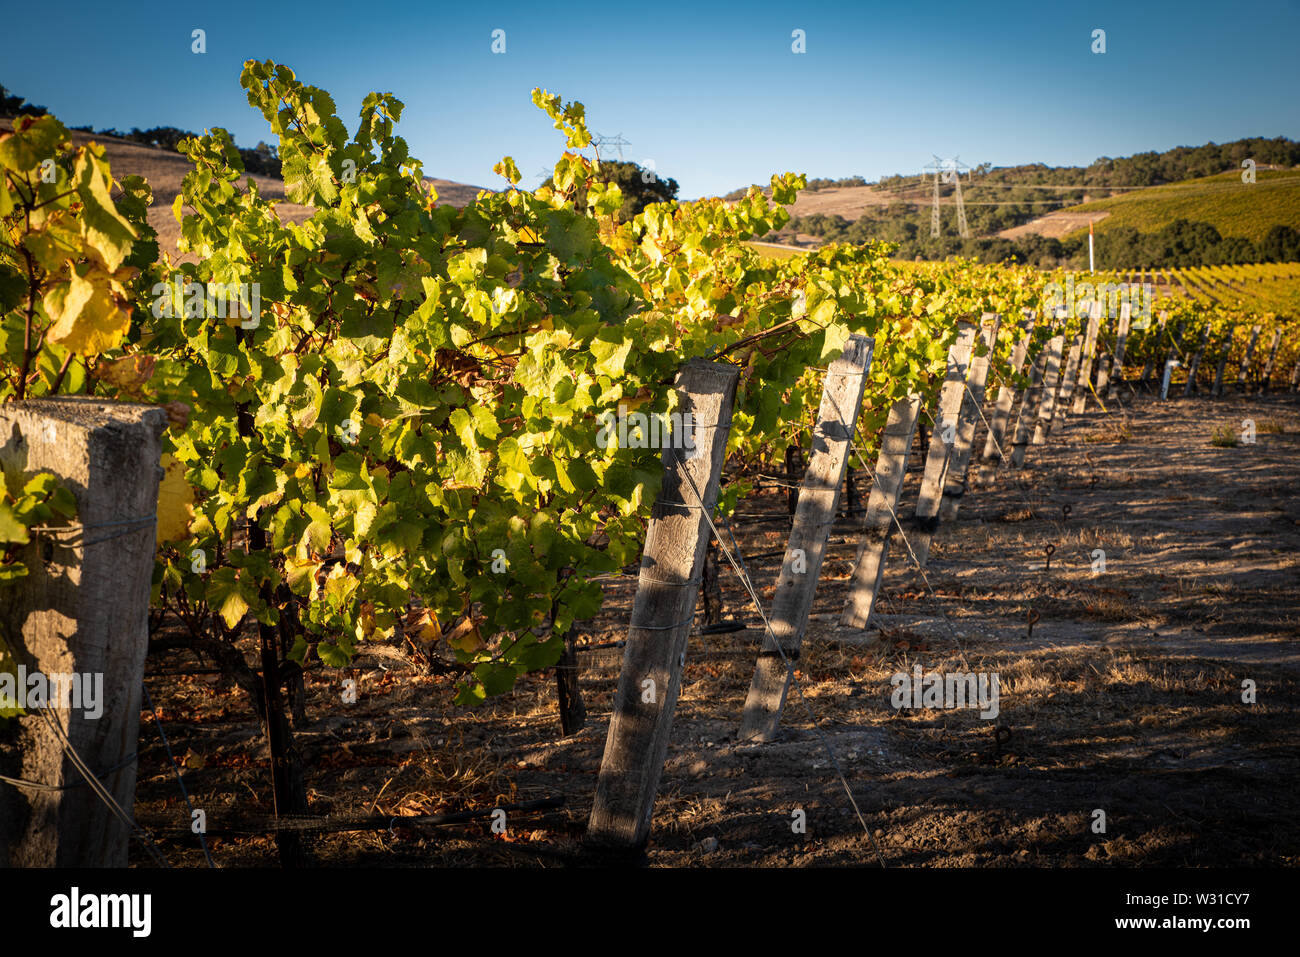 A vineyard in central California Stock Photo